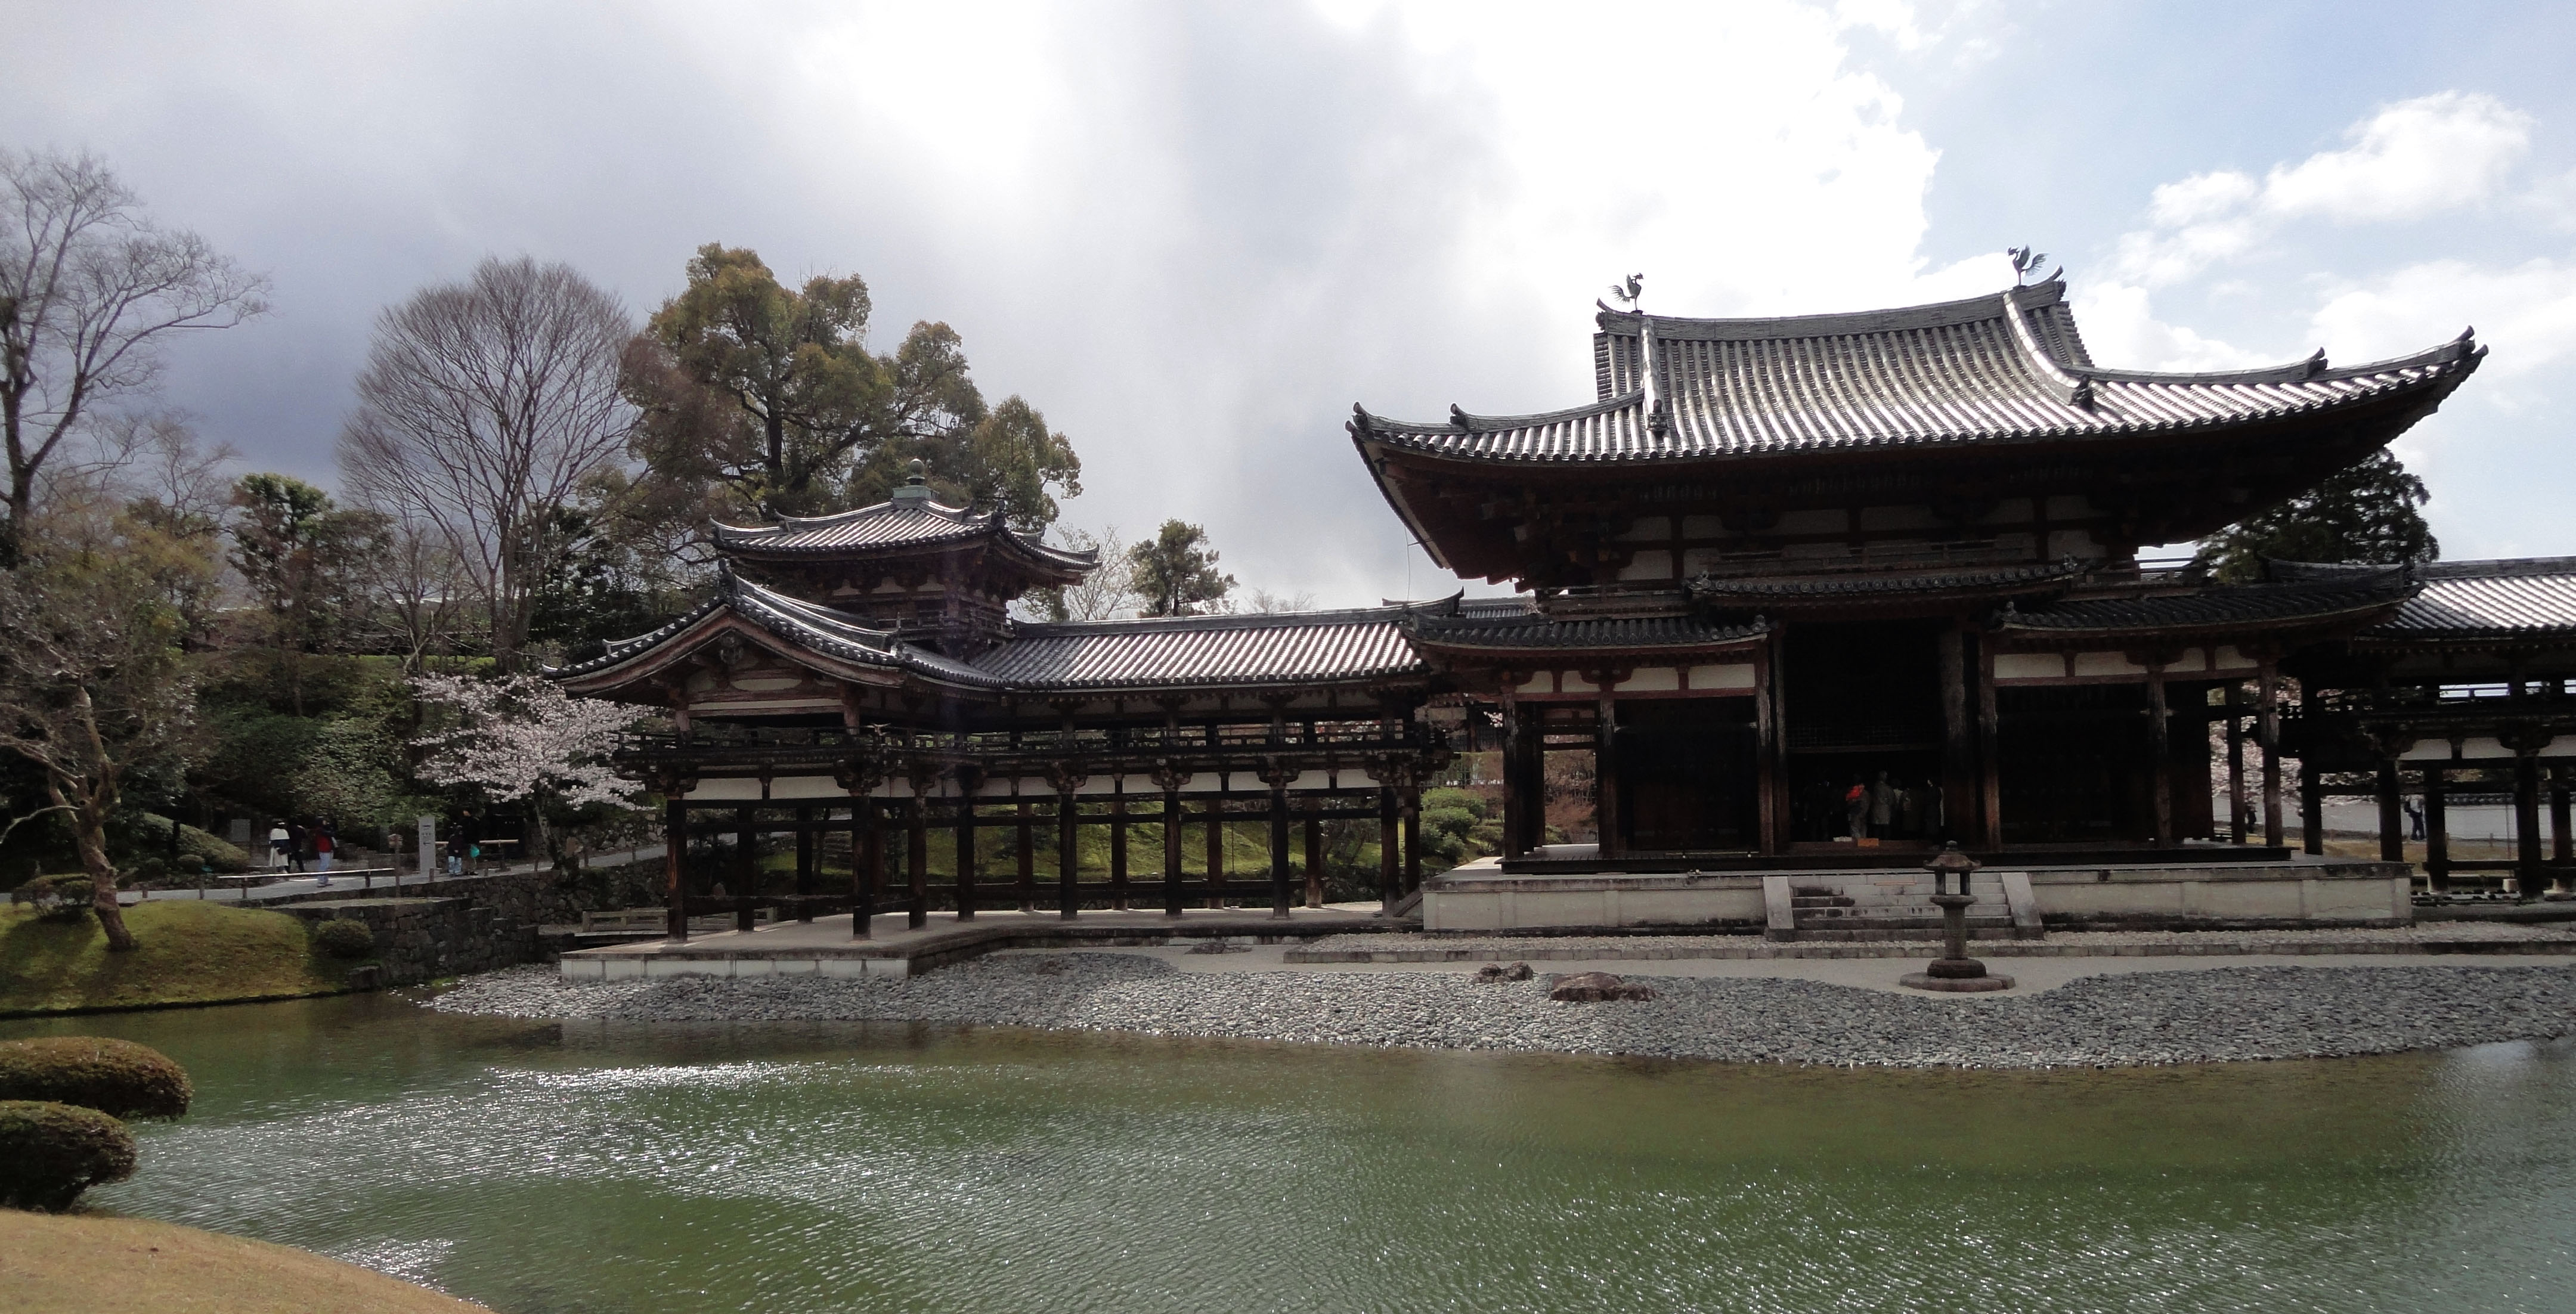 Byodo in temple Phoenix Hall Architecture Kyoto Japan 03